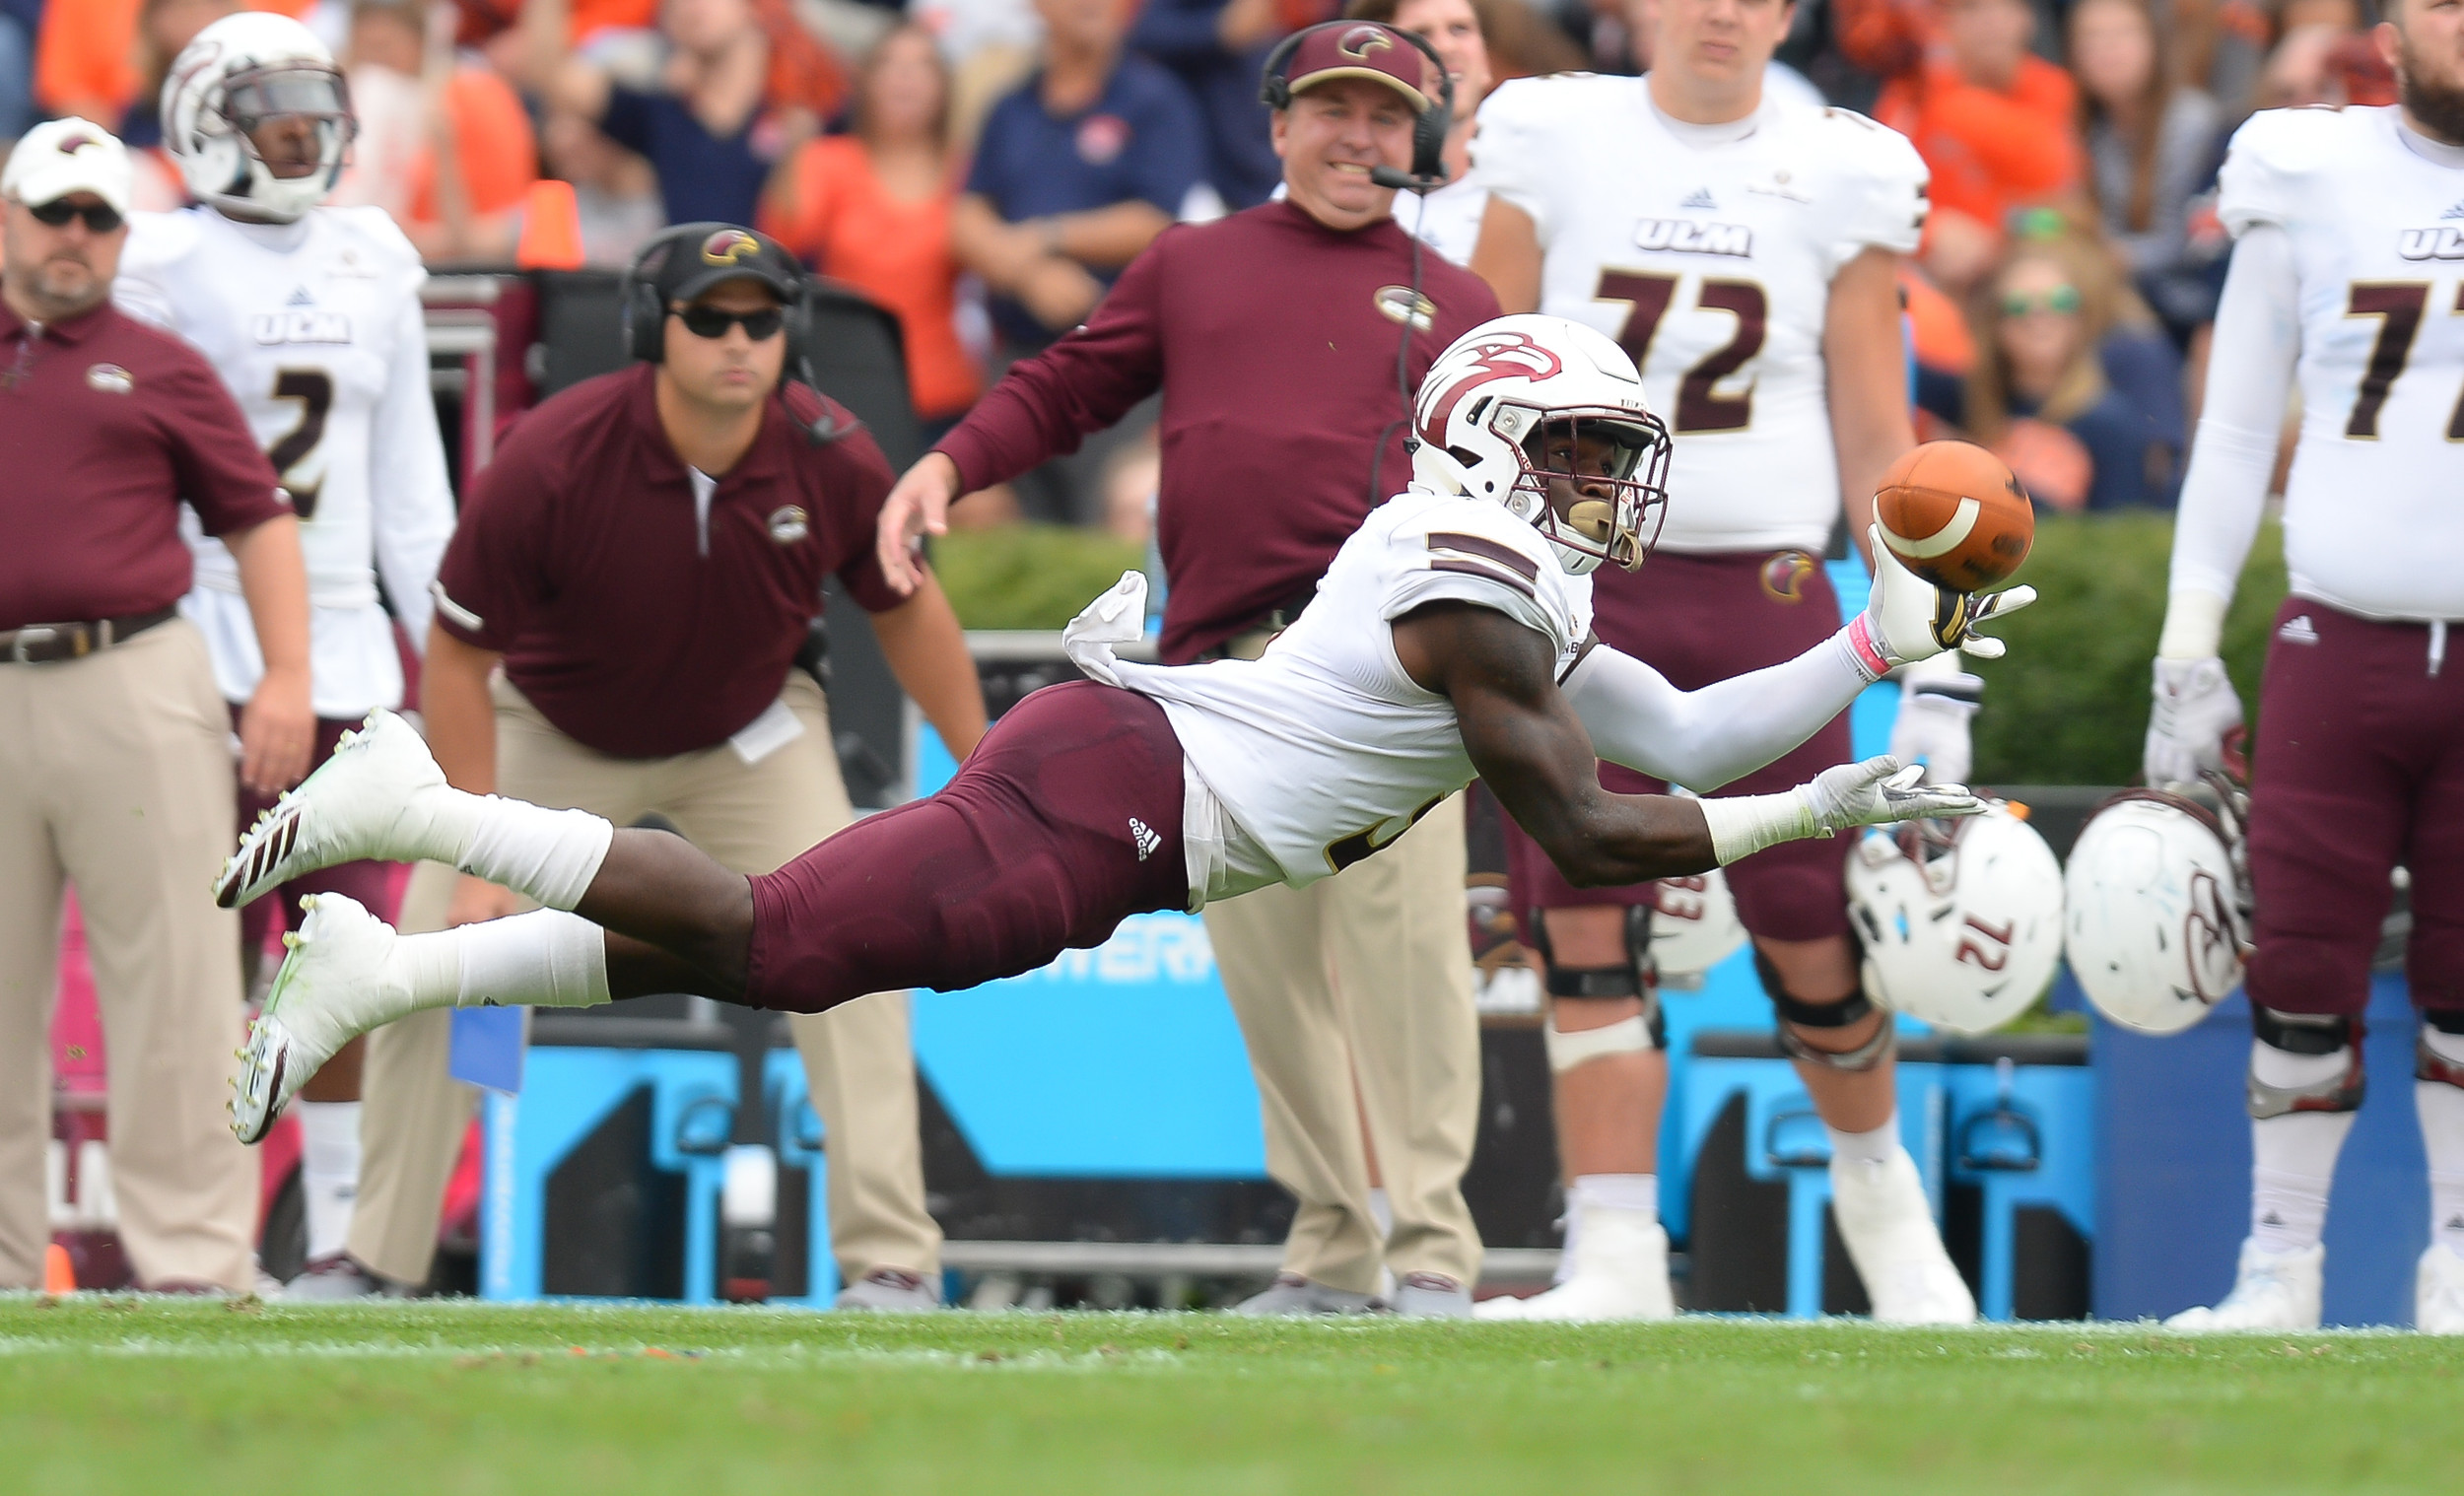 Louisiana Monroe Warhawks wide receiver Marcus Green (3) makes a diving catch during the first half of Saturday's game, at Jordan-Hare Stadium.